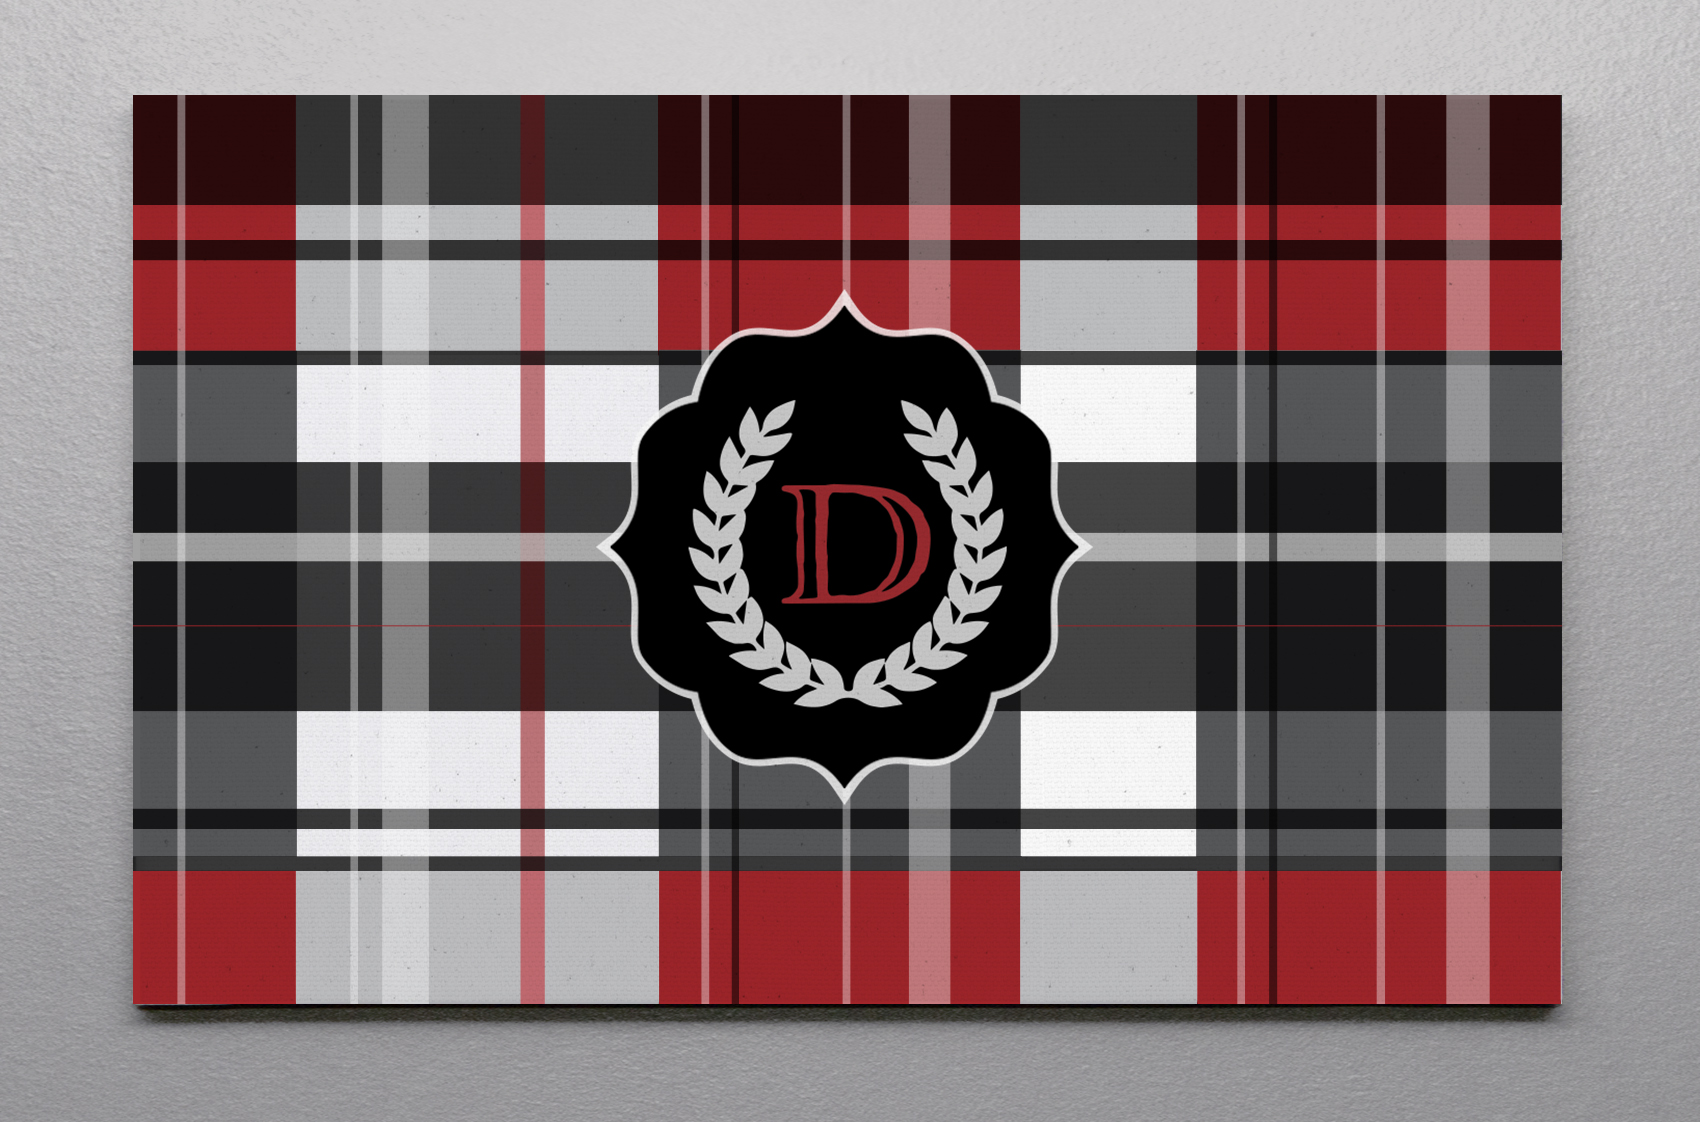 horizontal-canvas-red-plaid.jpg